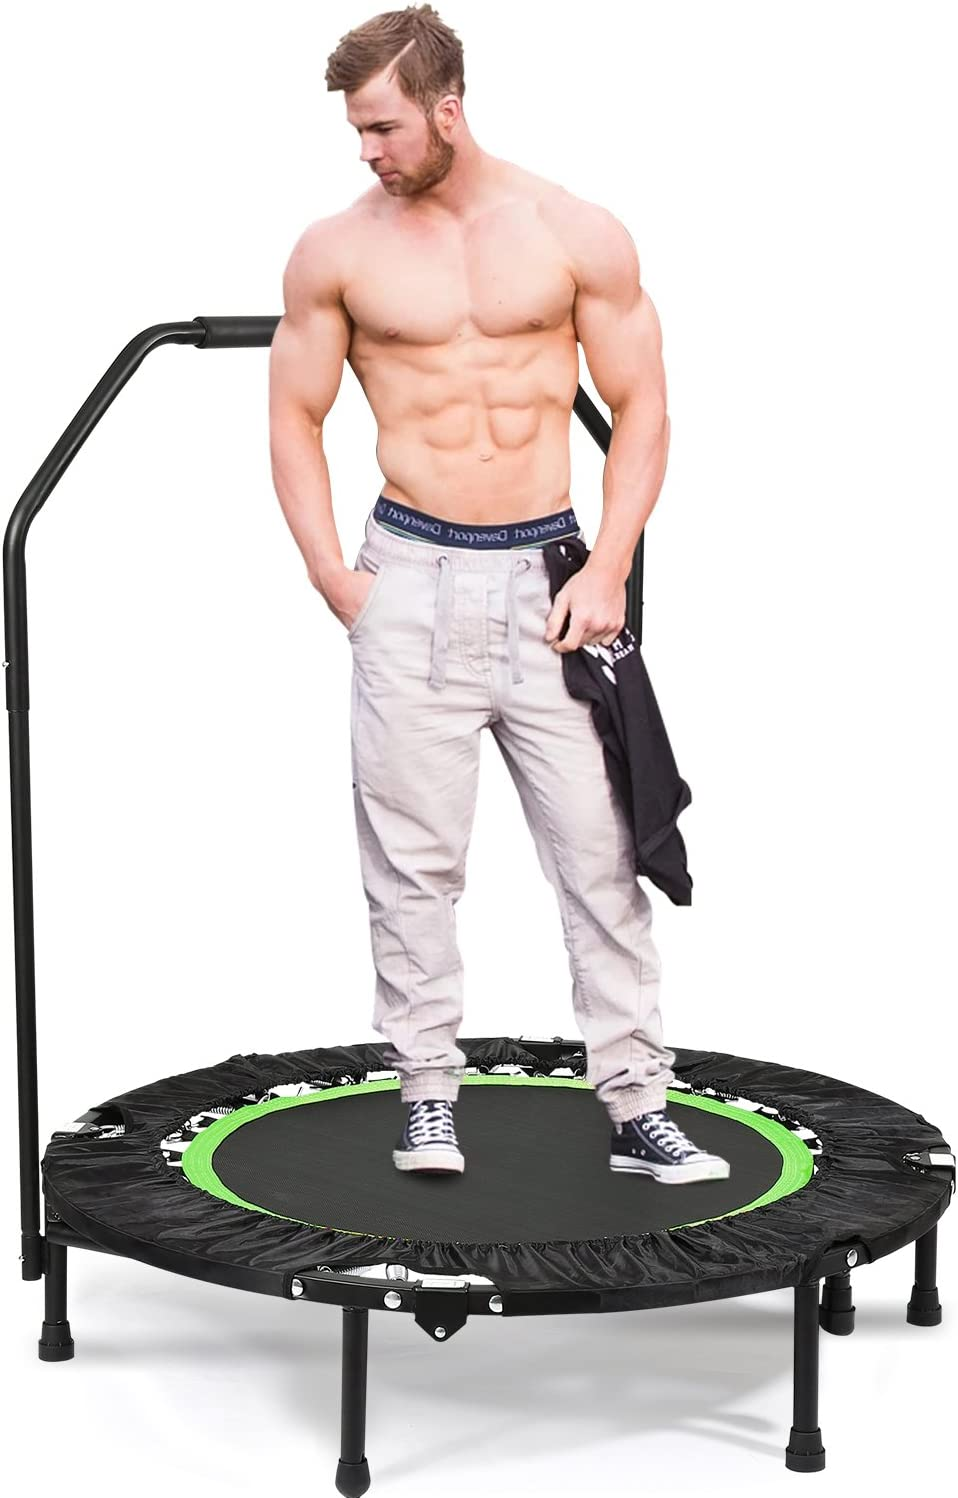 ANCHEER Foldable 40 Mini Trampoline Rebounder, Max Load 300lbs Rebounder Trampoline Exercise Fitness Trampoline for Indoor Garden Workout Cardio Green